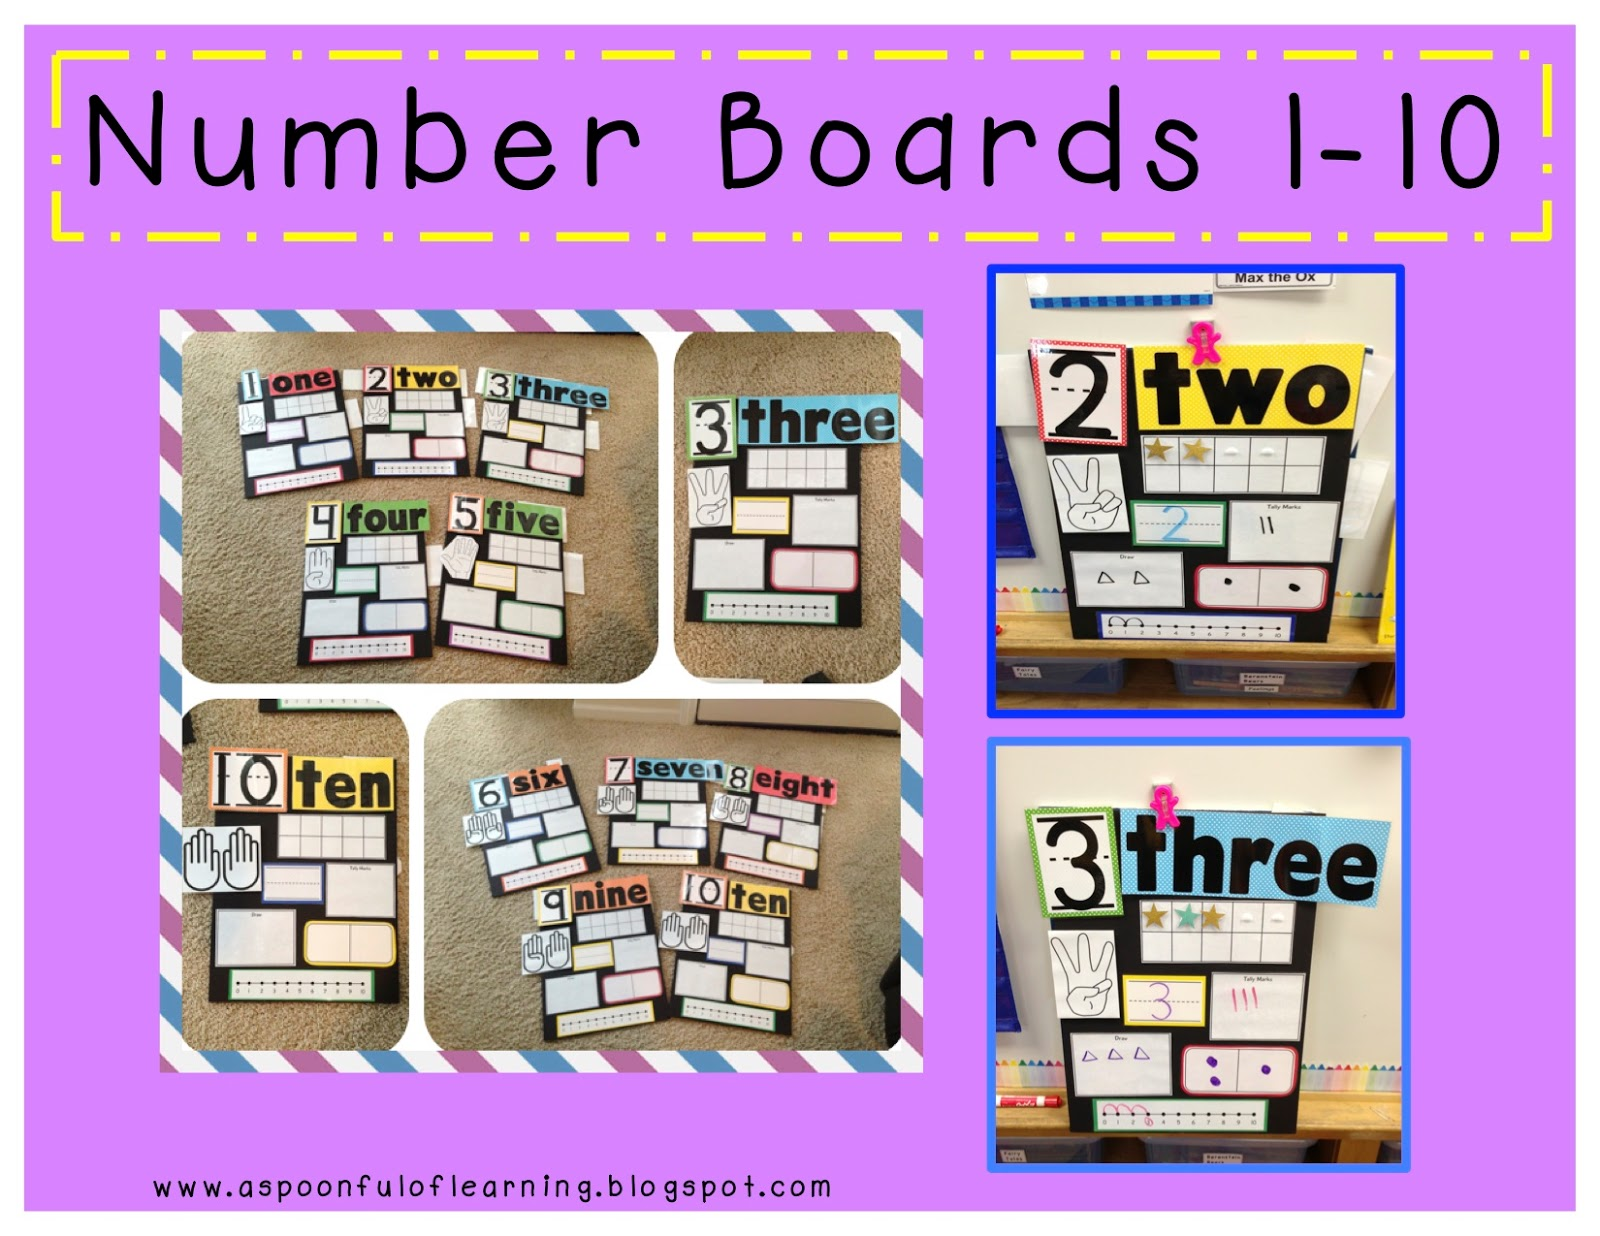 Number Boards For Your Classroom!